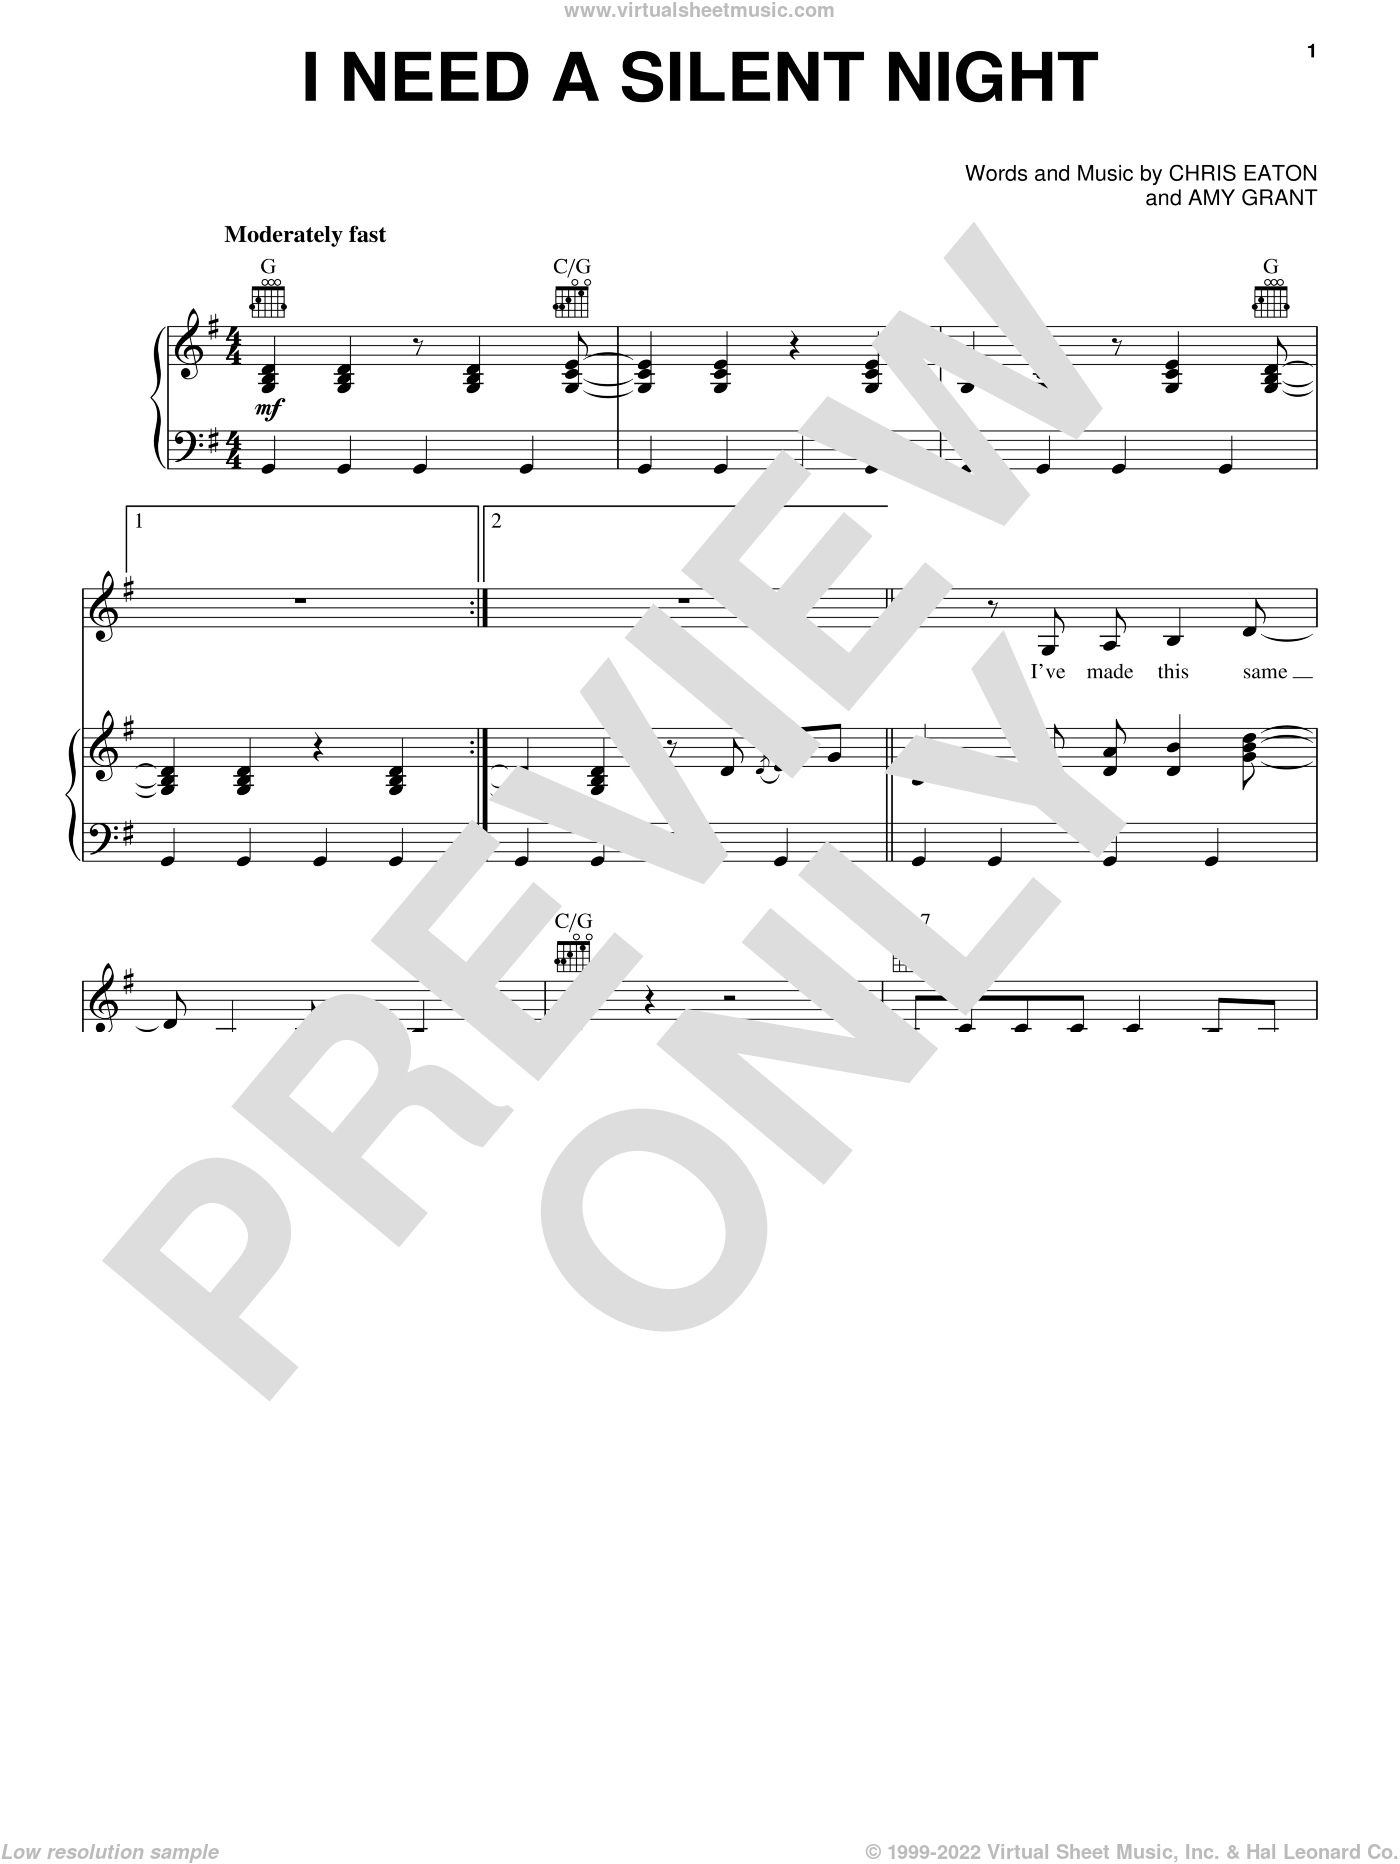 I Need A Silent Night sheet music for voice, piano or guitar by Chris Eaton